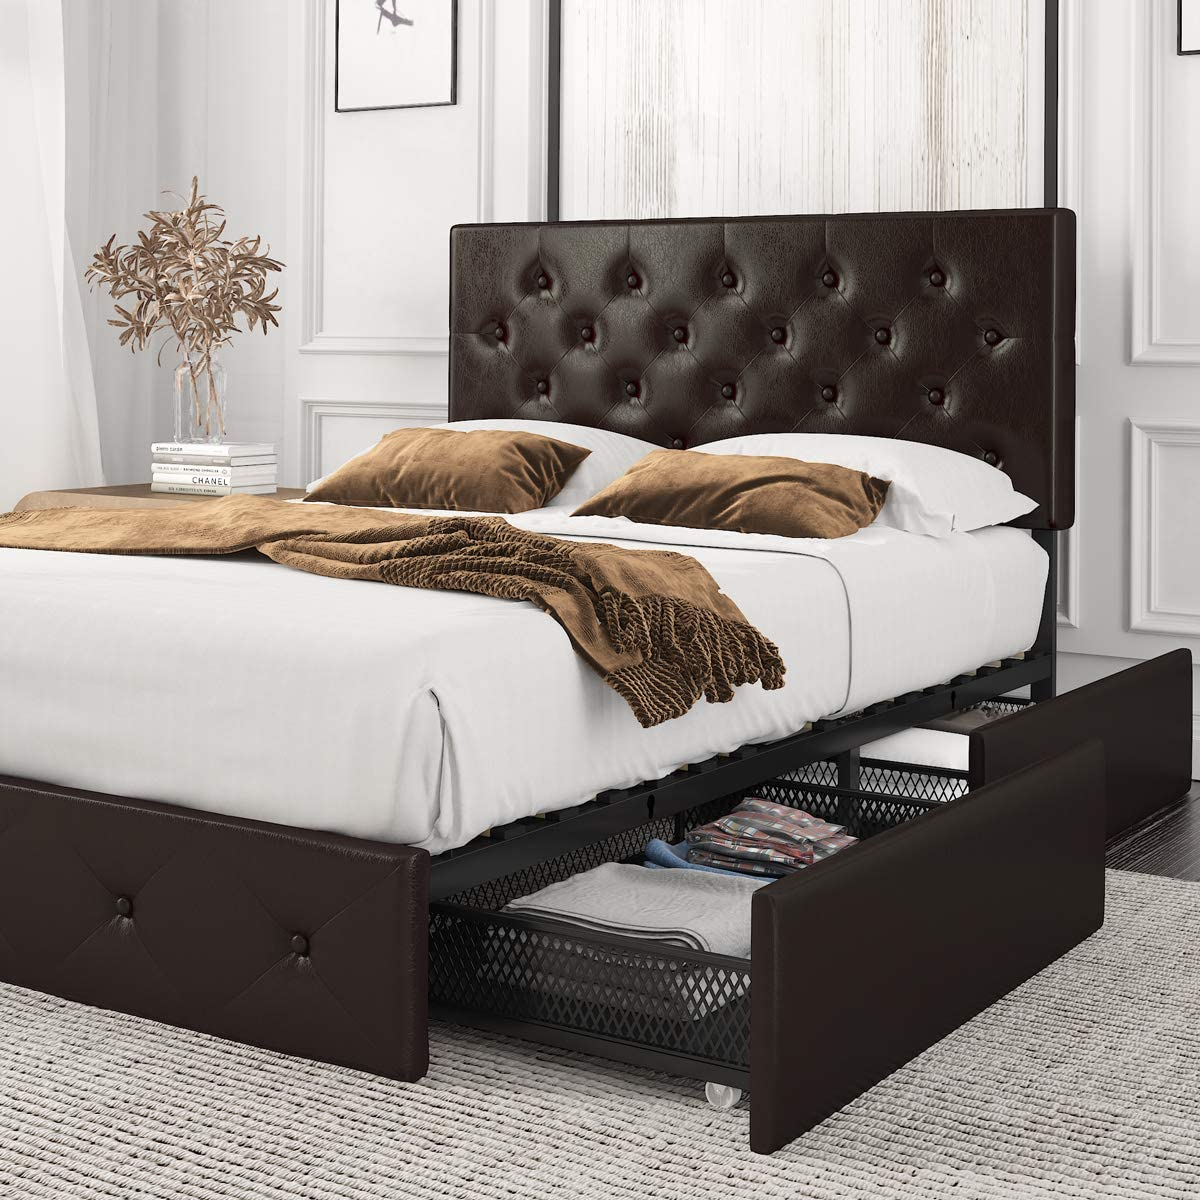 Amolife Queen Size Platform Bed Frame with 4 Storage Drawers and Wood Slat Support, Faux Leather Upholstered Mattress Foundation with Button Tufted Headboard and Underbed Storage, Black Brown